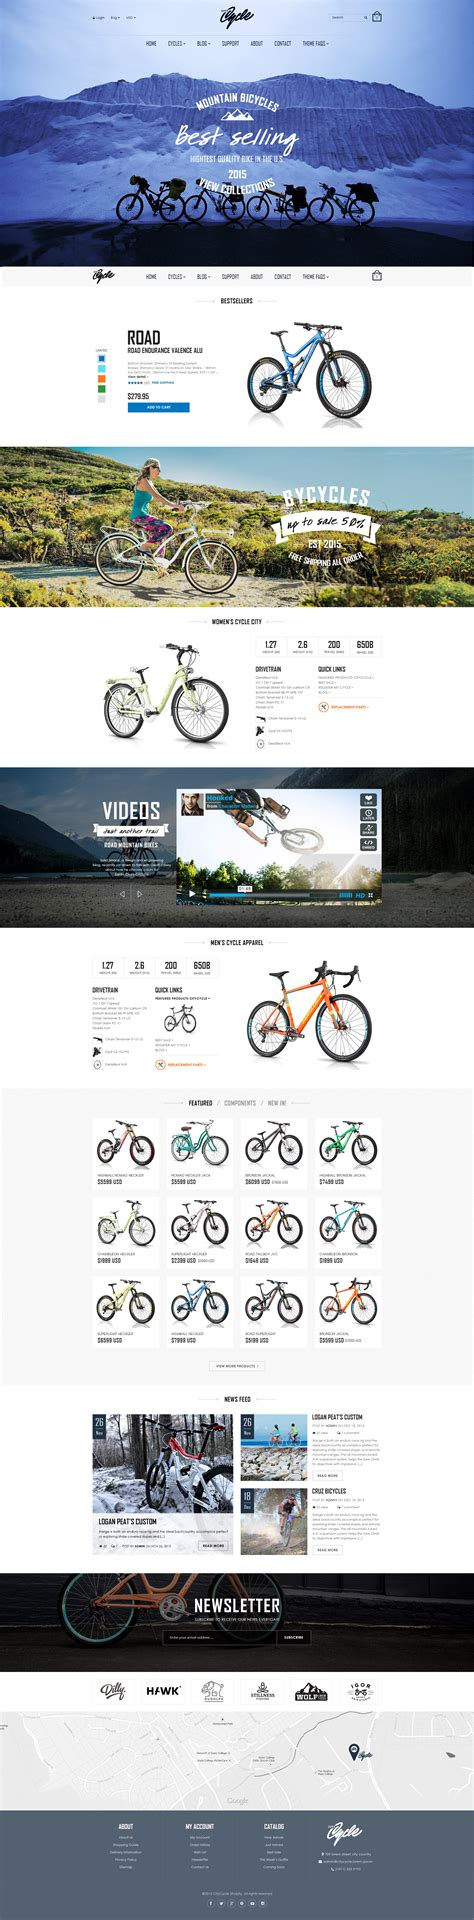 shopify themes responsive 2015 top 20 shopify themes with parallax scrolling effects